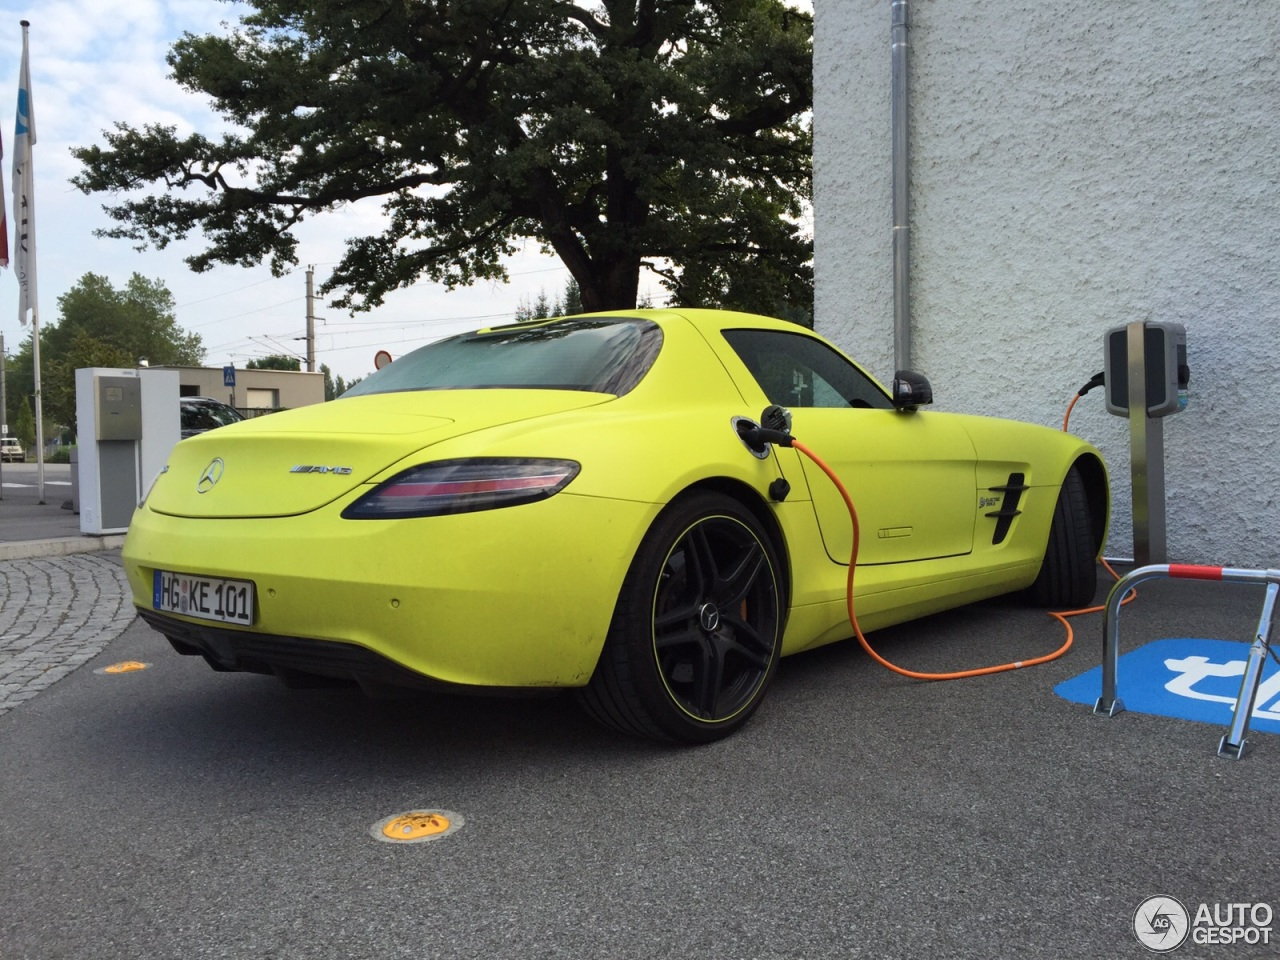 Mercedes benz sls amg electric drive 14 september 2015 for Mercedes benz sls amg electric drive price